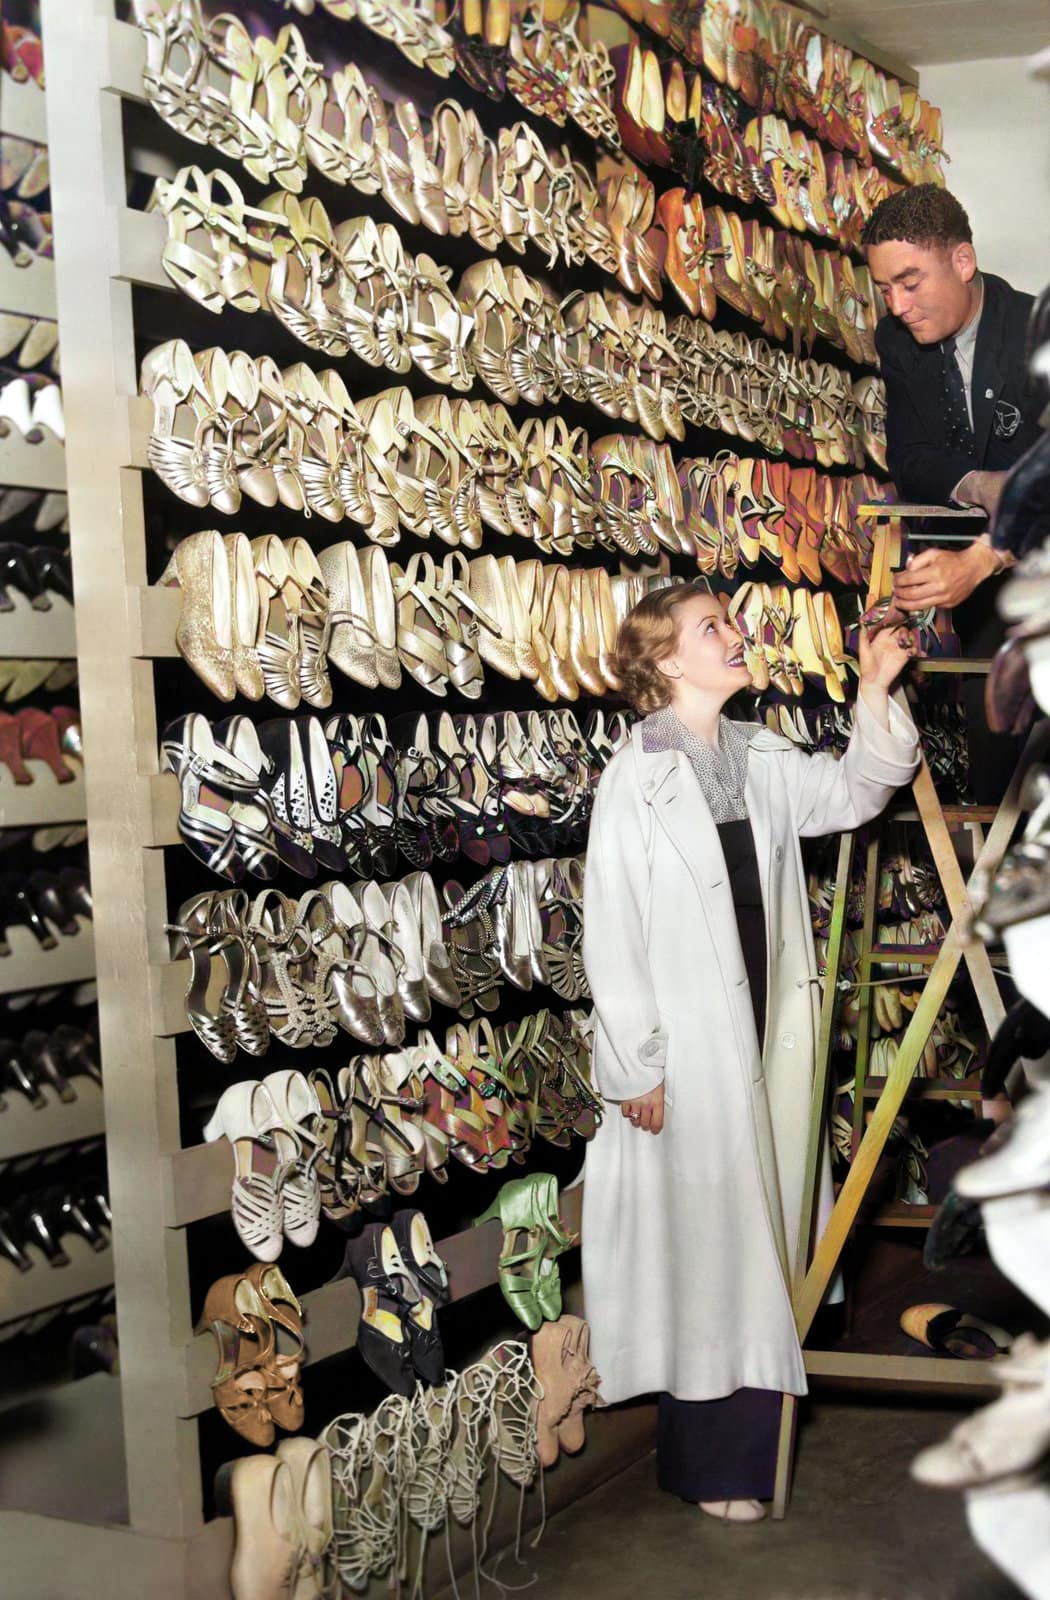 Woman from the 1930s-1940s at a vintage shoe store - Colorized photo